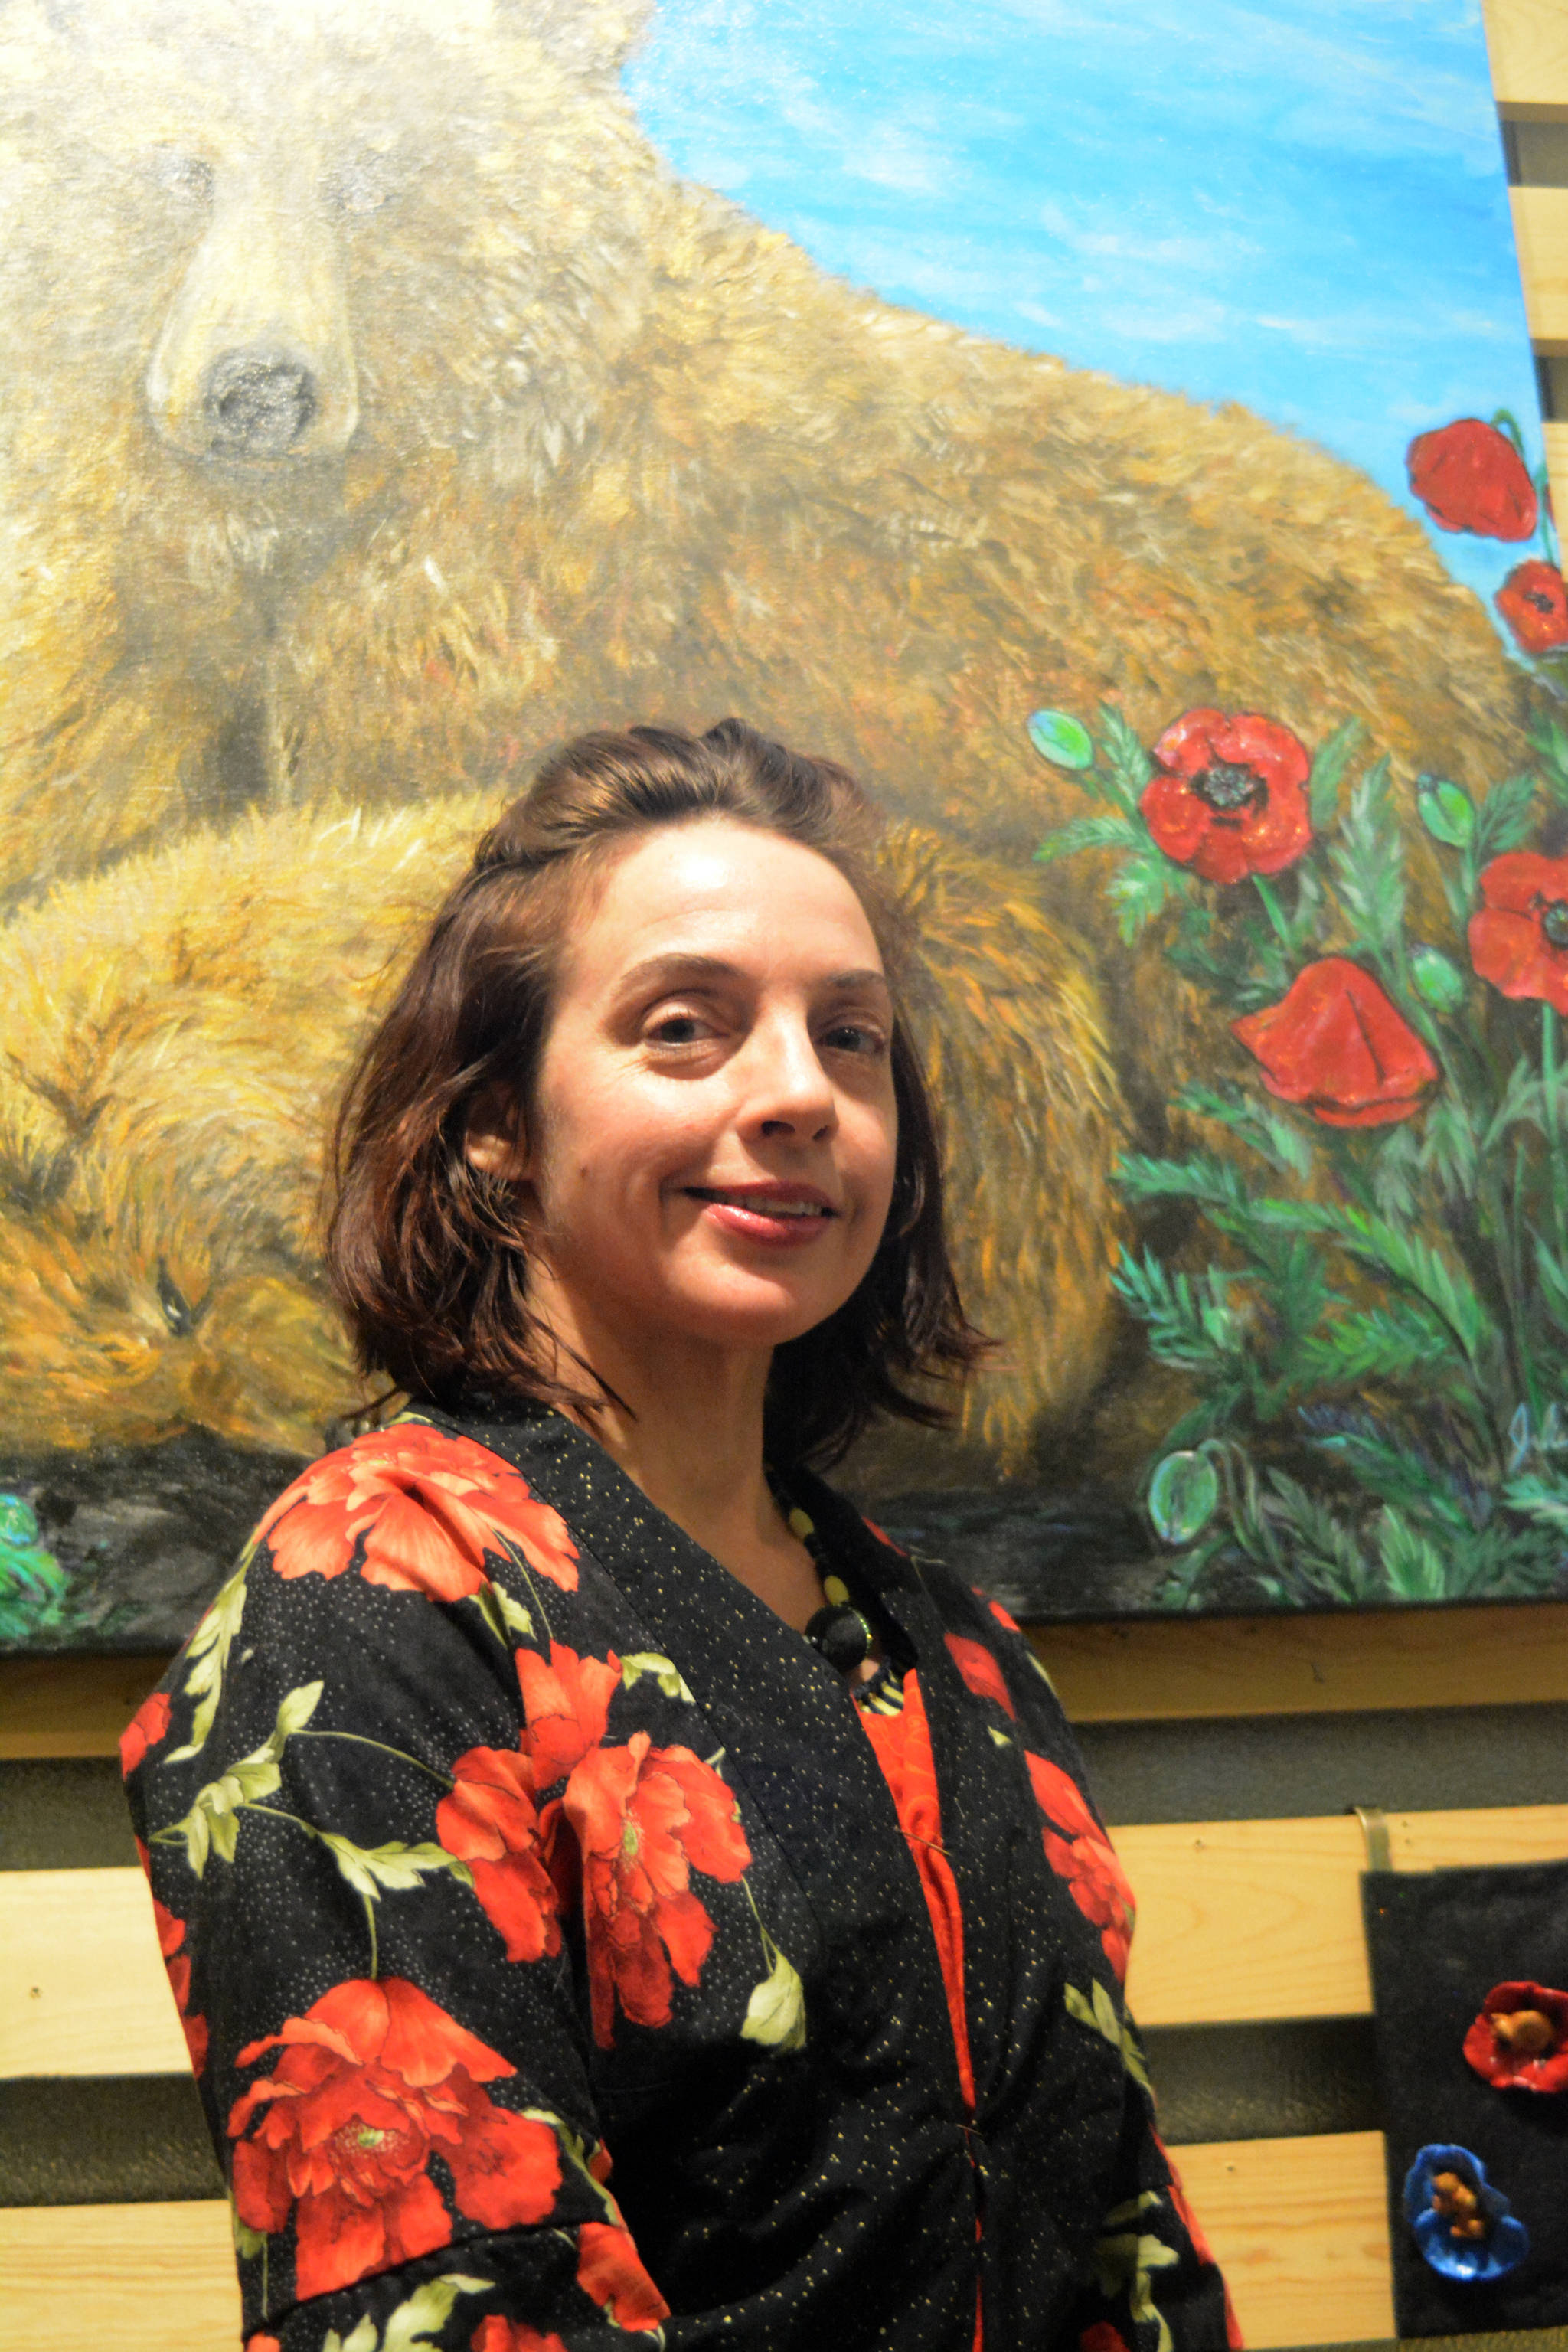 Artist Julianne Tomich stands next to one of her bear paintings at the First Friday opening of her show at Grace Ridge Brewery. (Photo by Michael Armstrong, Homer News)